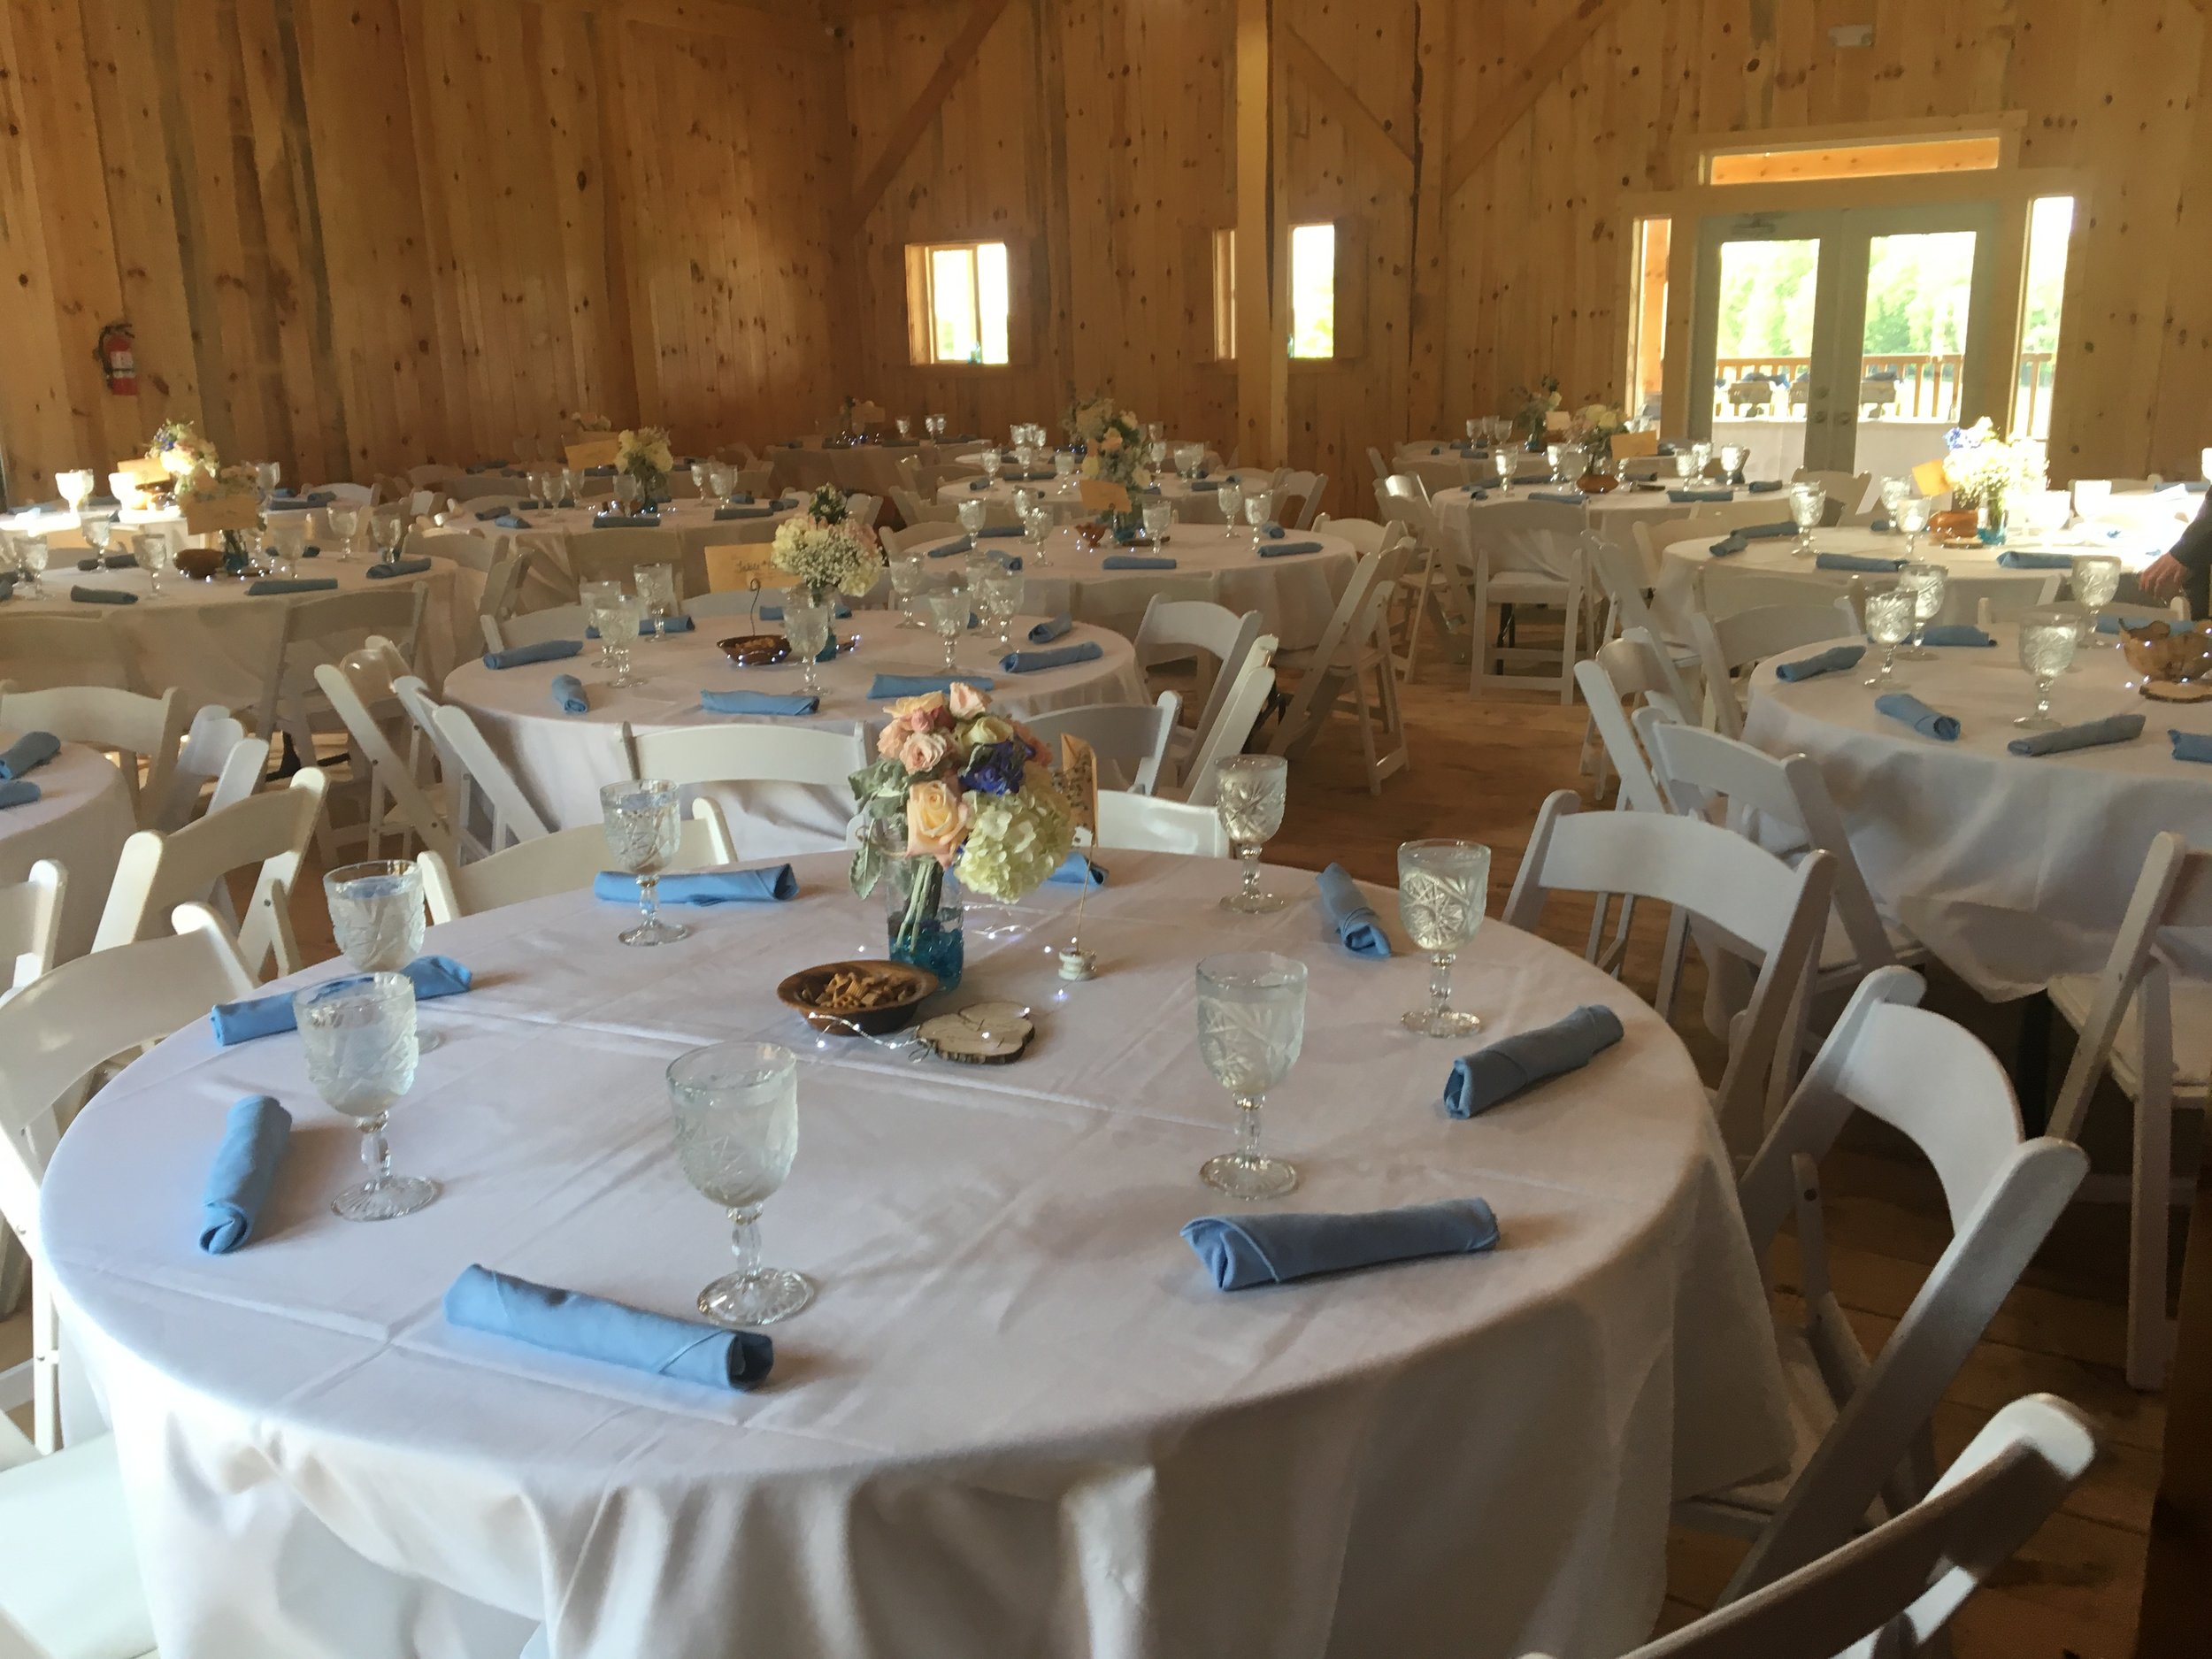 Guest tables set with linens, blue napkin rolled silverware and water goblets.